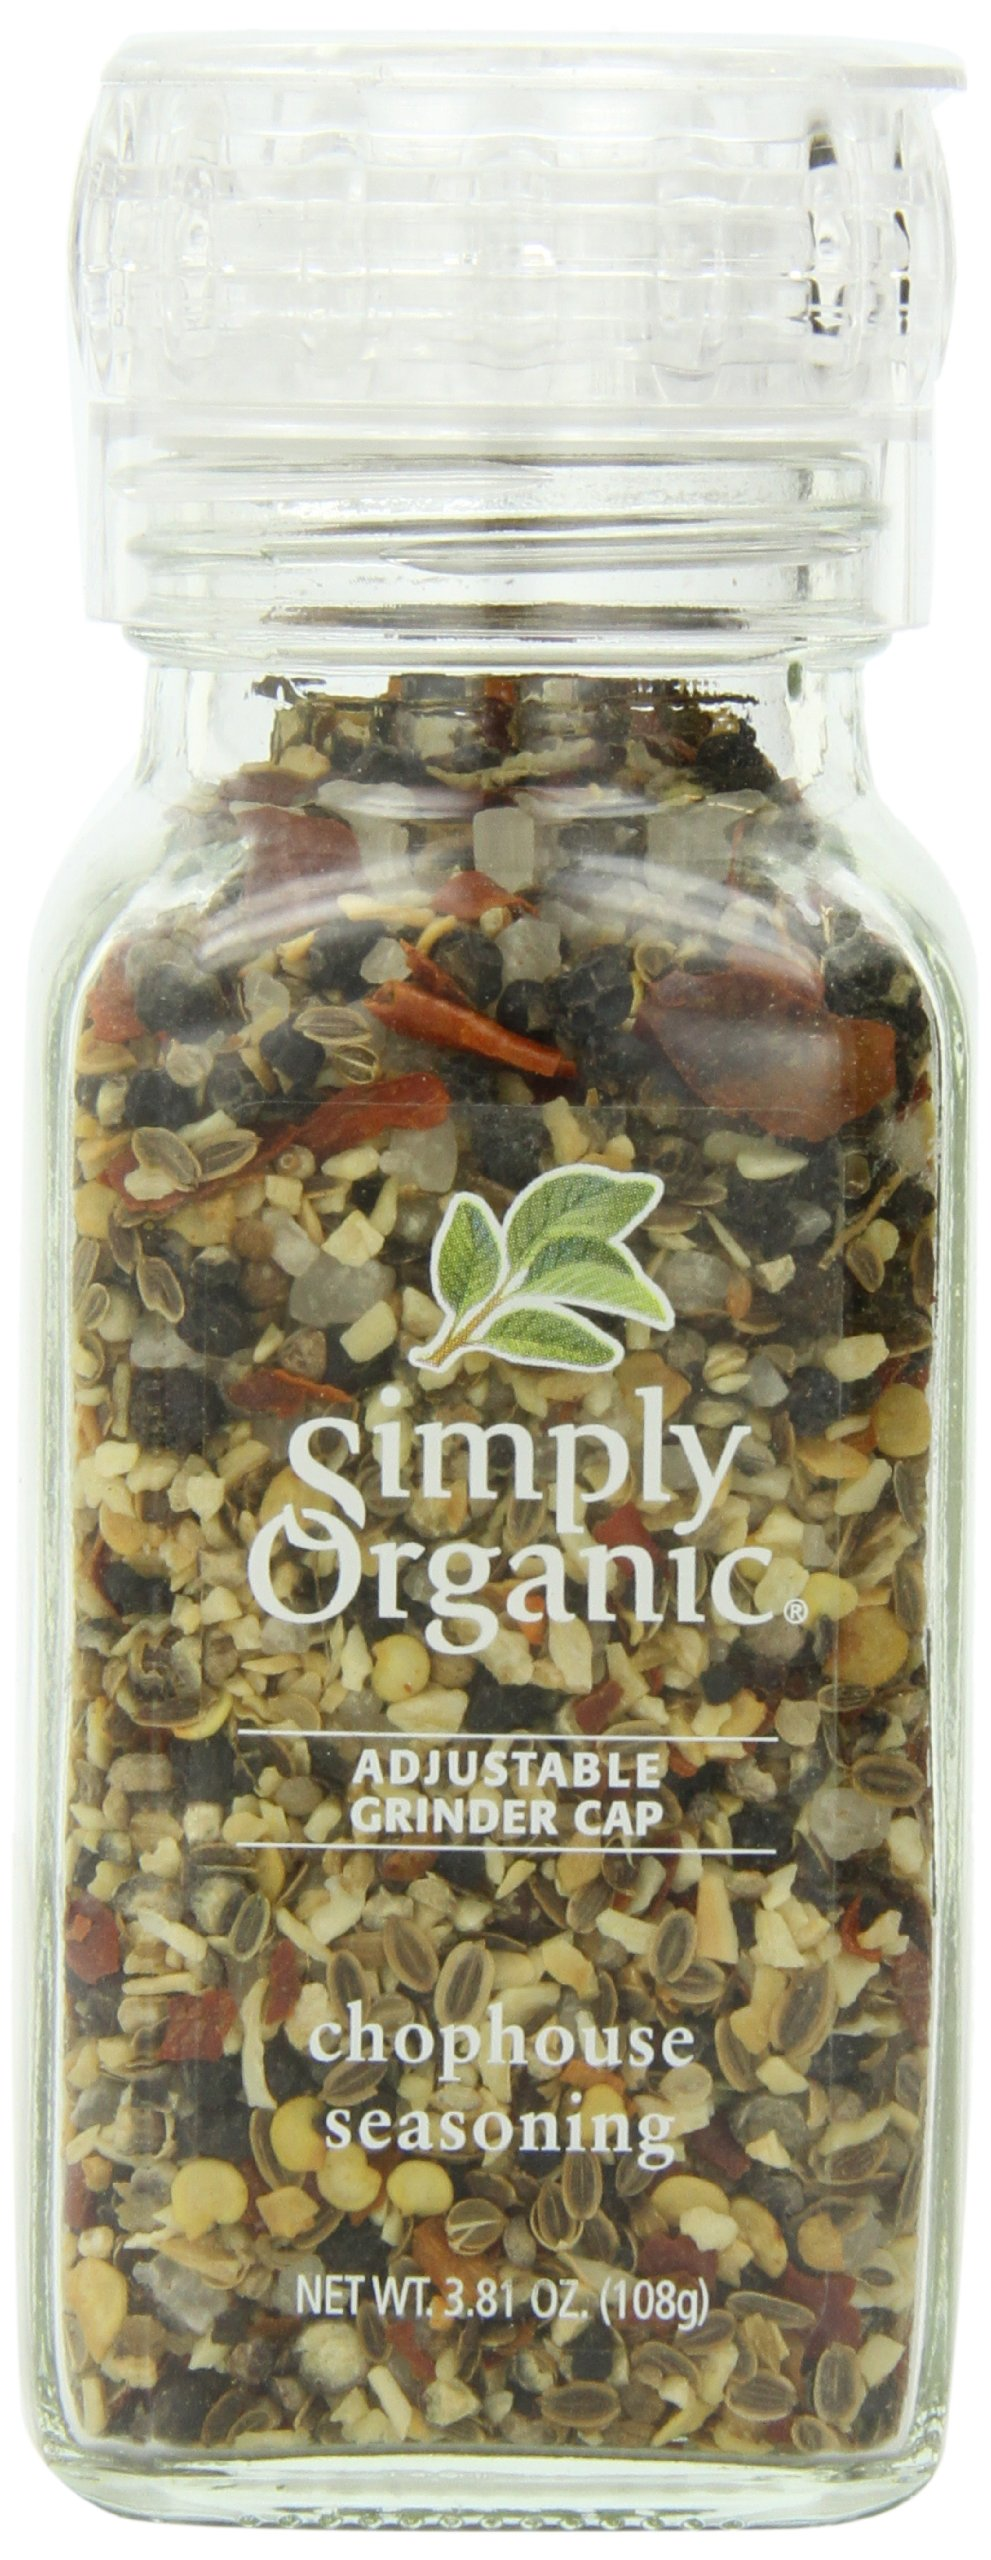 Simply Organic Chophouse Seasoning Certified Organic, 3.81-Ounce Container